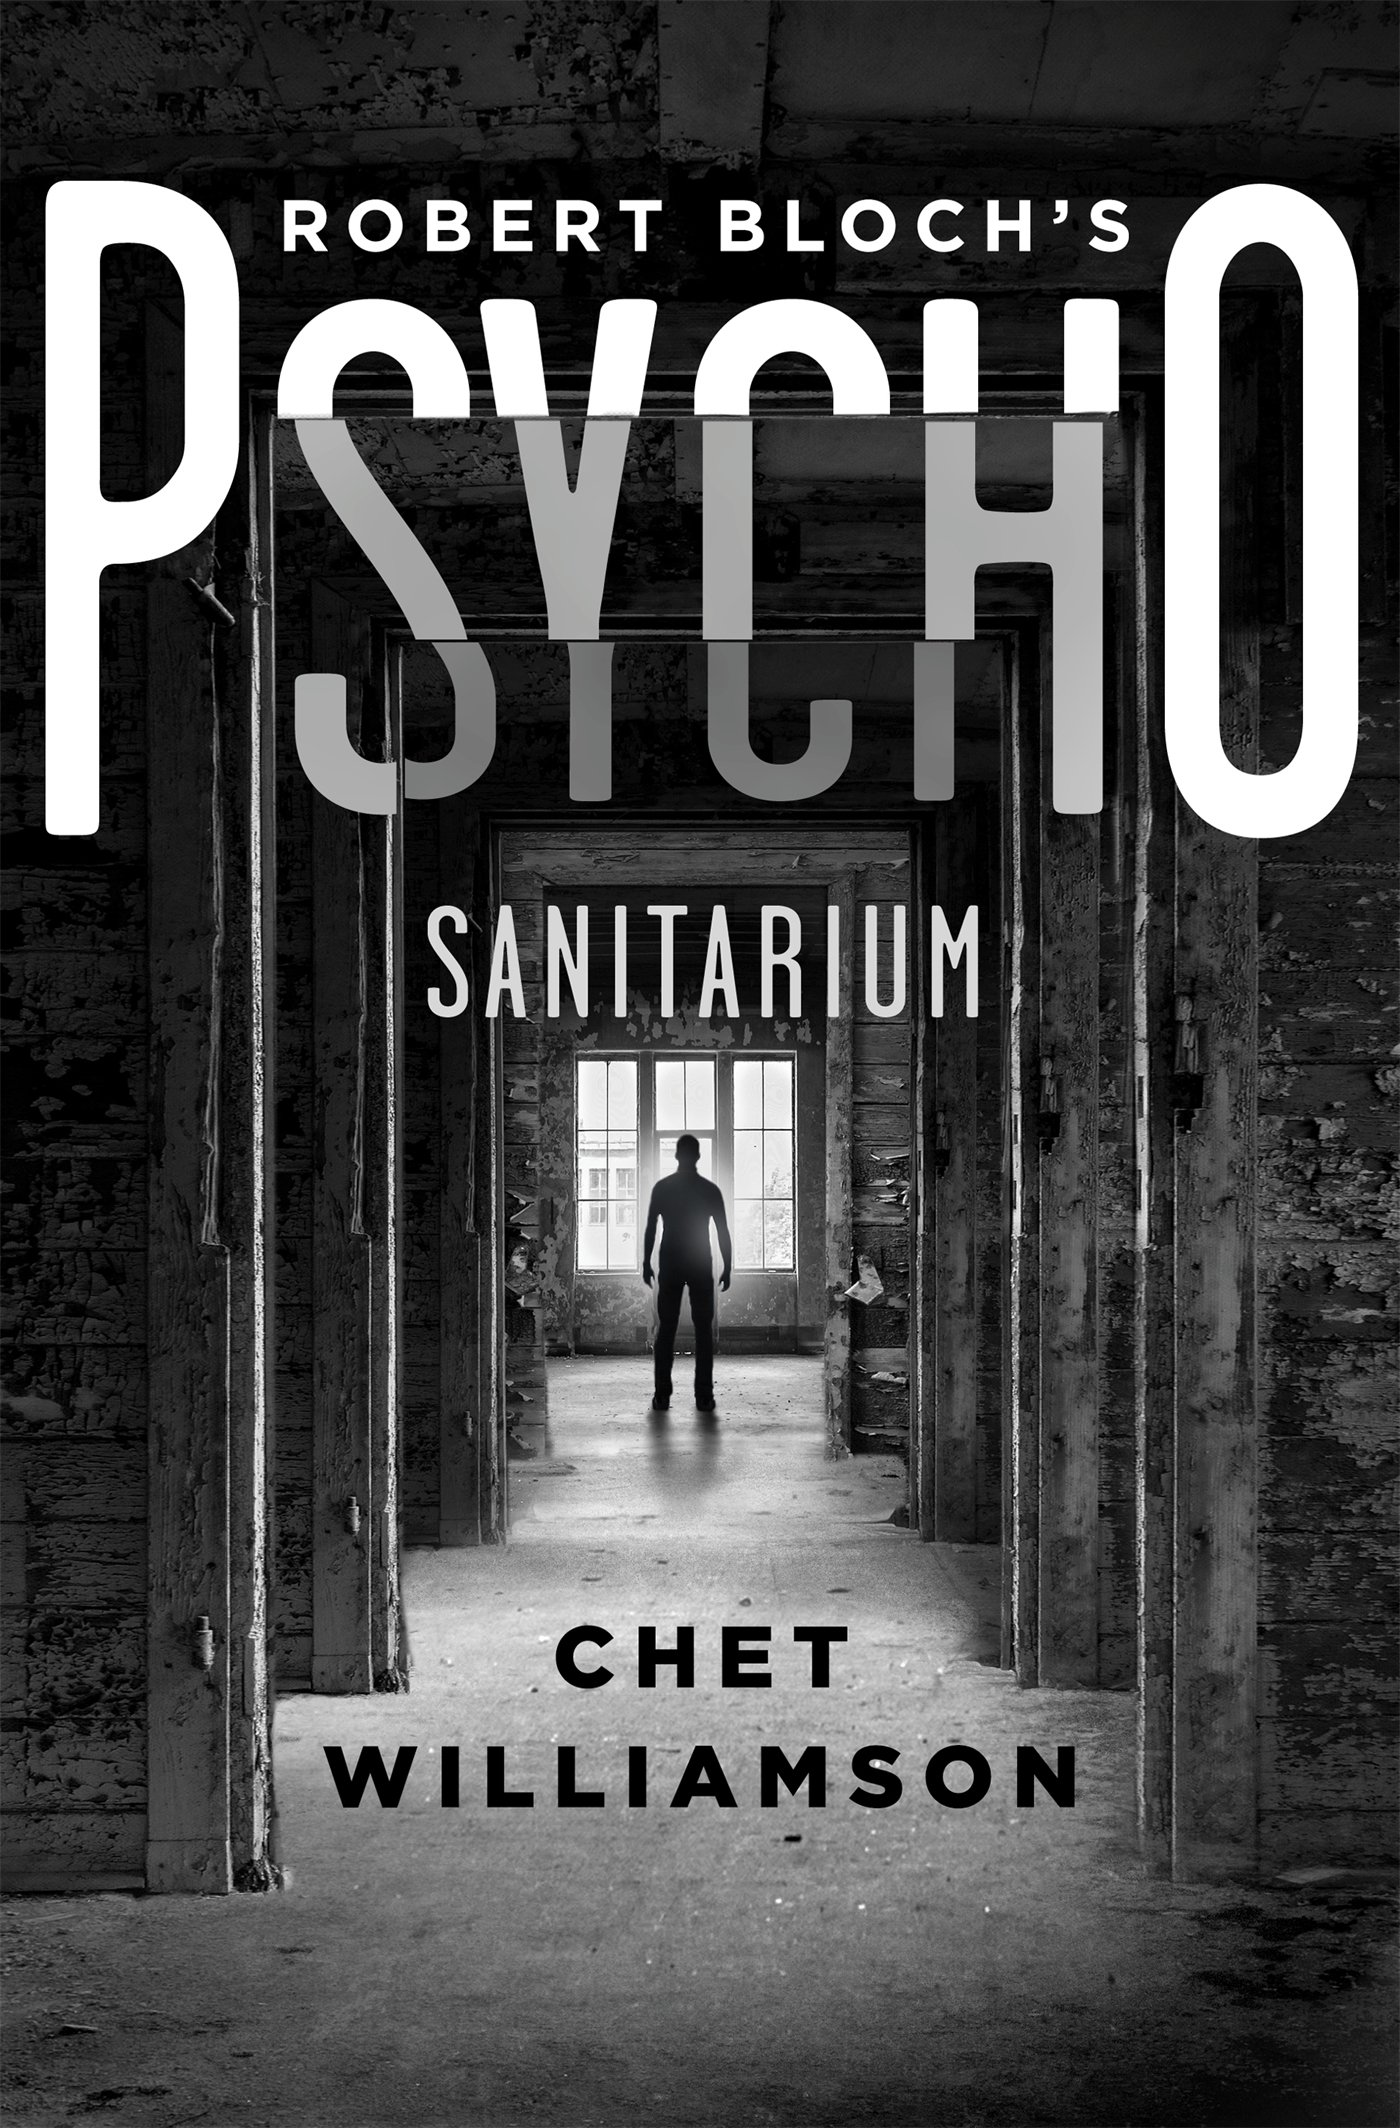 Psycho Sanitarium (Book review)